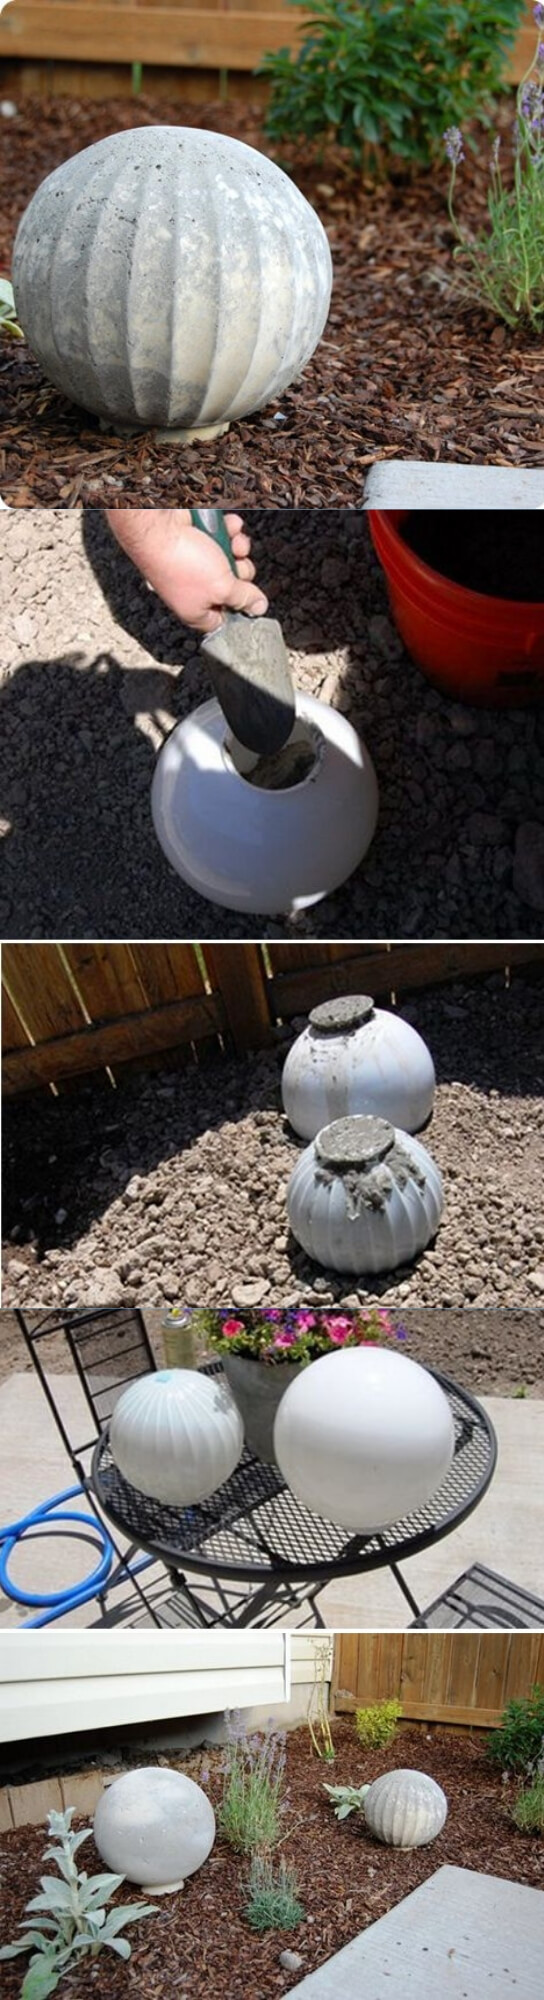 DIY Concrete garden spheres | Best DIY Garden Globe Ideas & Designs